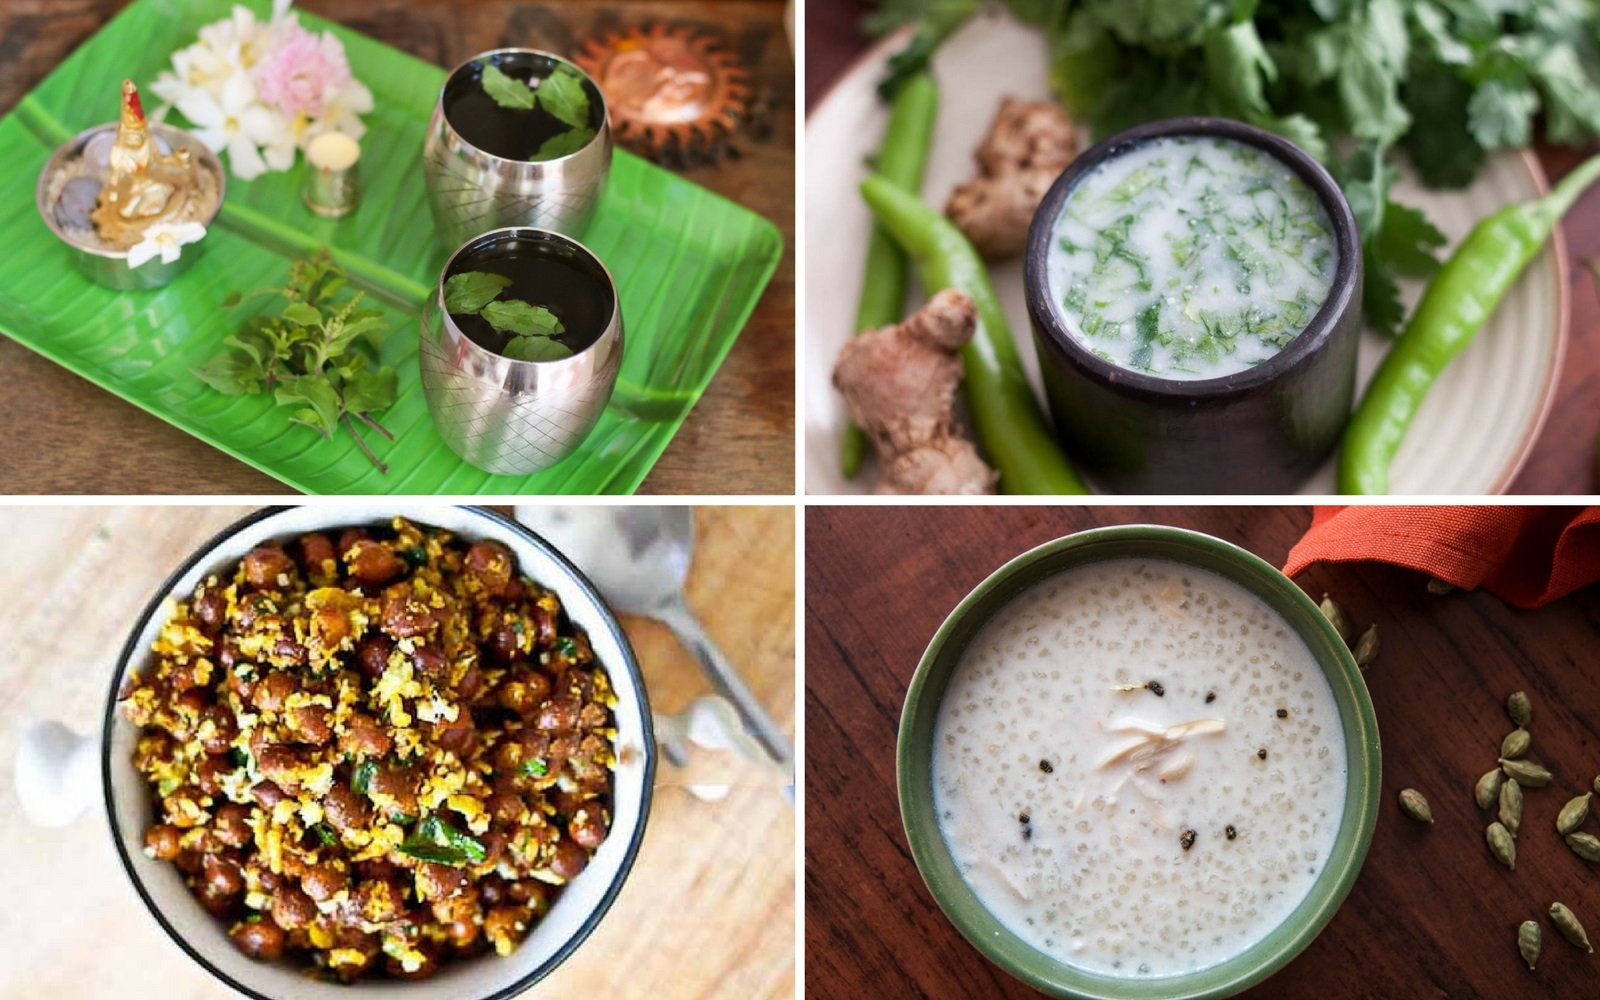 Celebrate ram navami with 6 delicious south indian recipes by celebrate ram navami with 6 delicious south indian recipes forumfinder Gallery